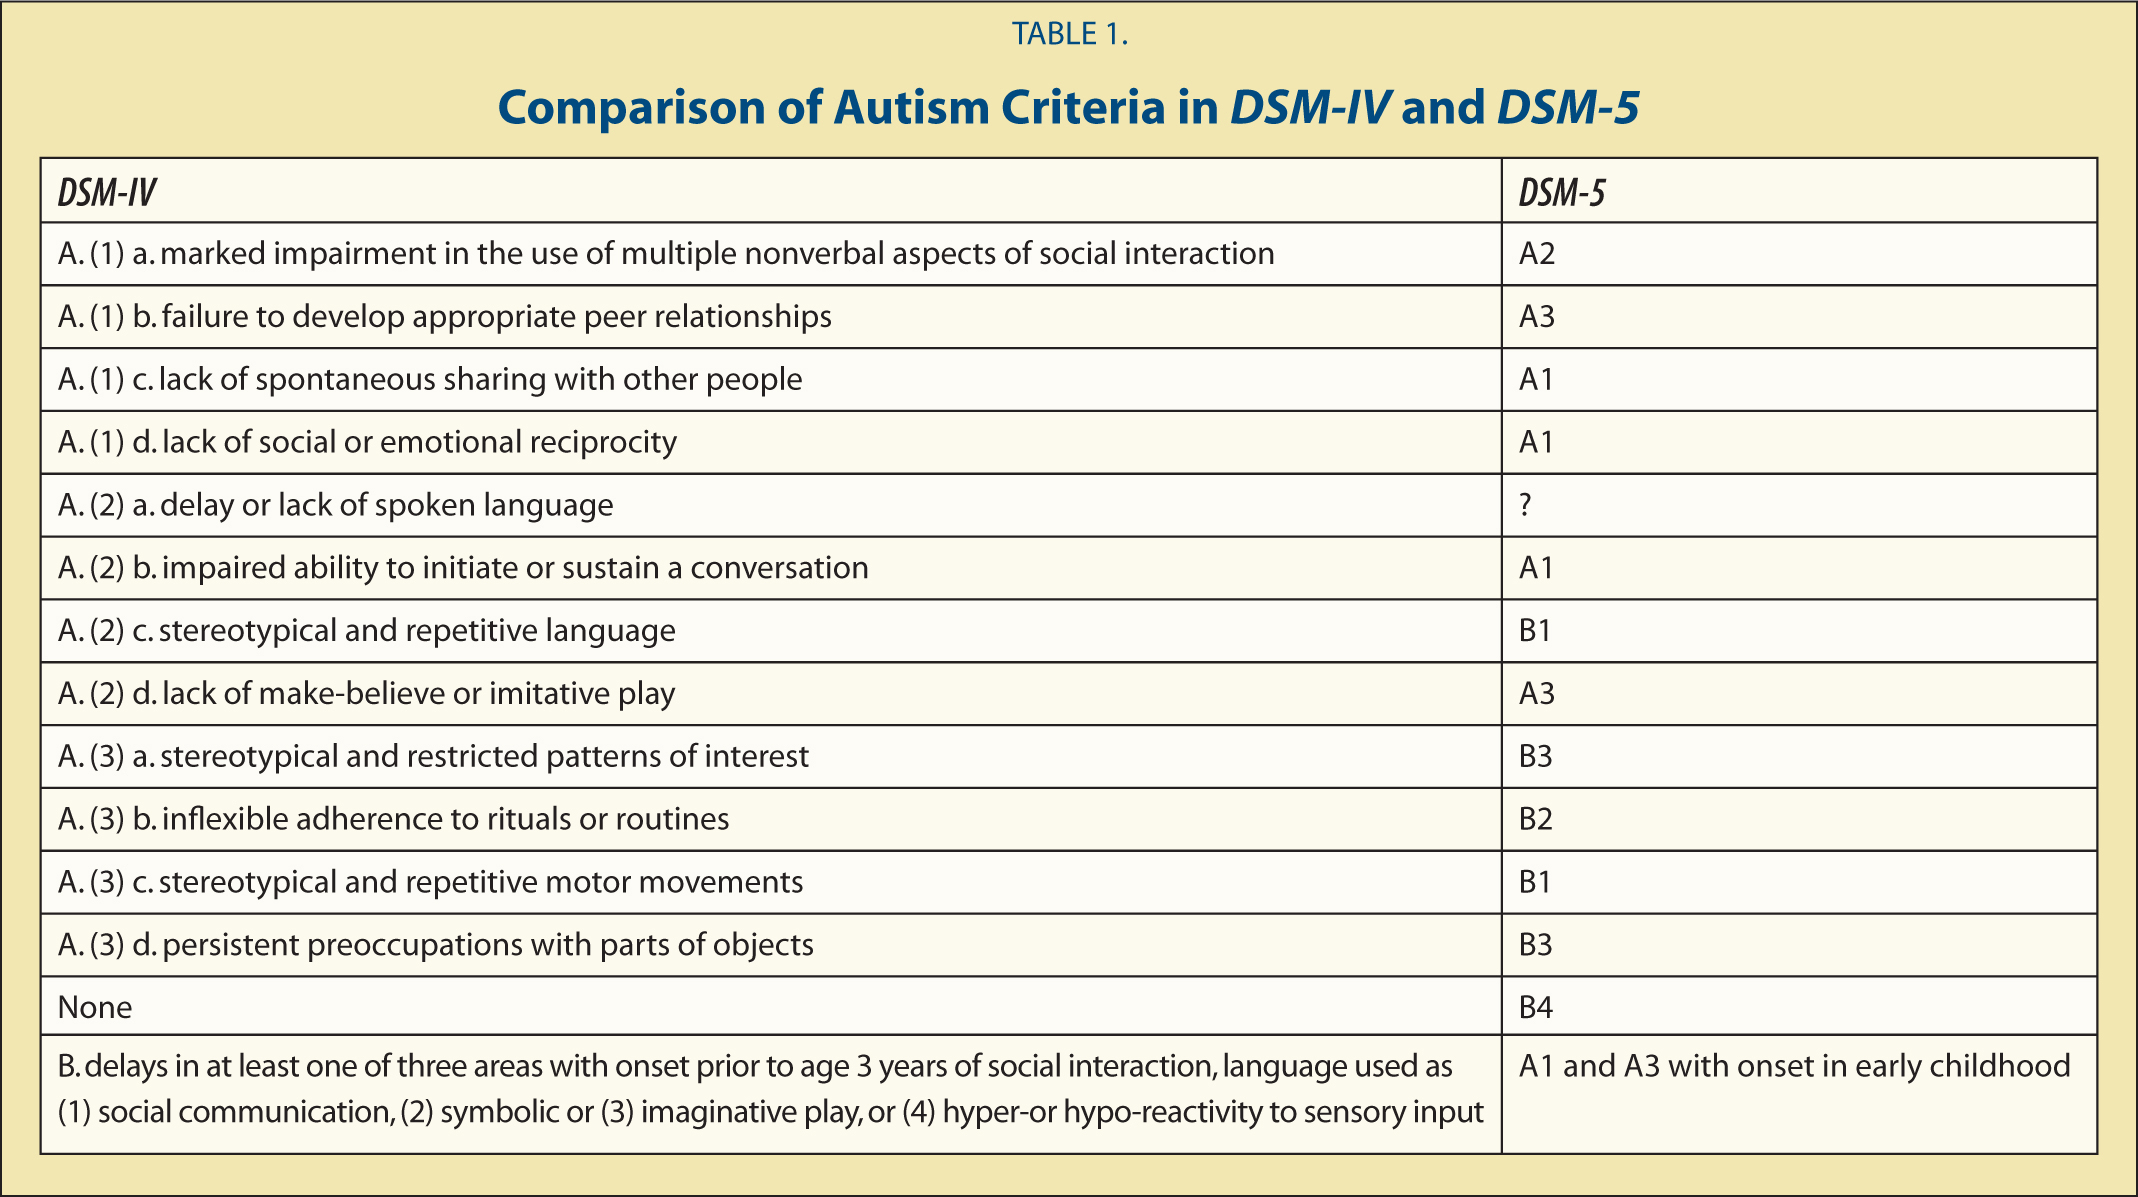 Comparison of Autism Criteria in DSM-IV and DSM-5